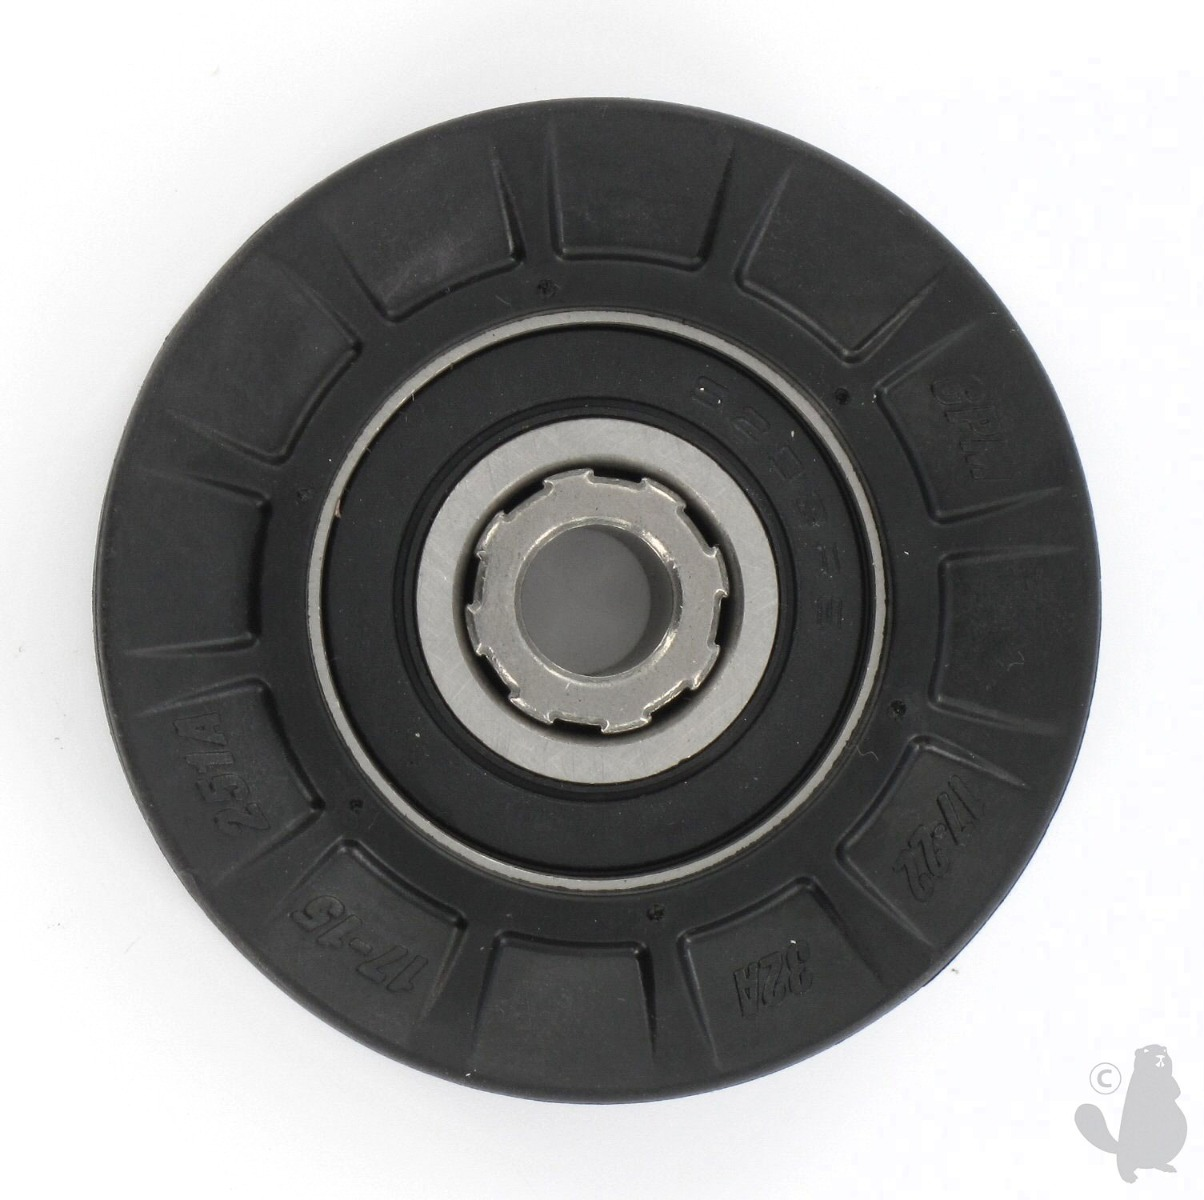 Garden Spares 6206535 Pulley V-Belt with Bearing